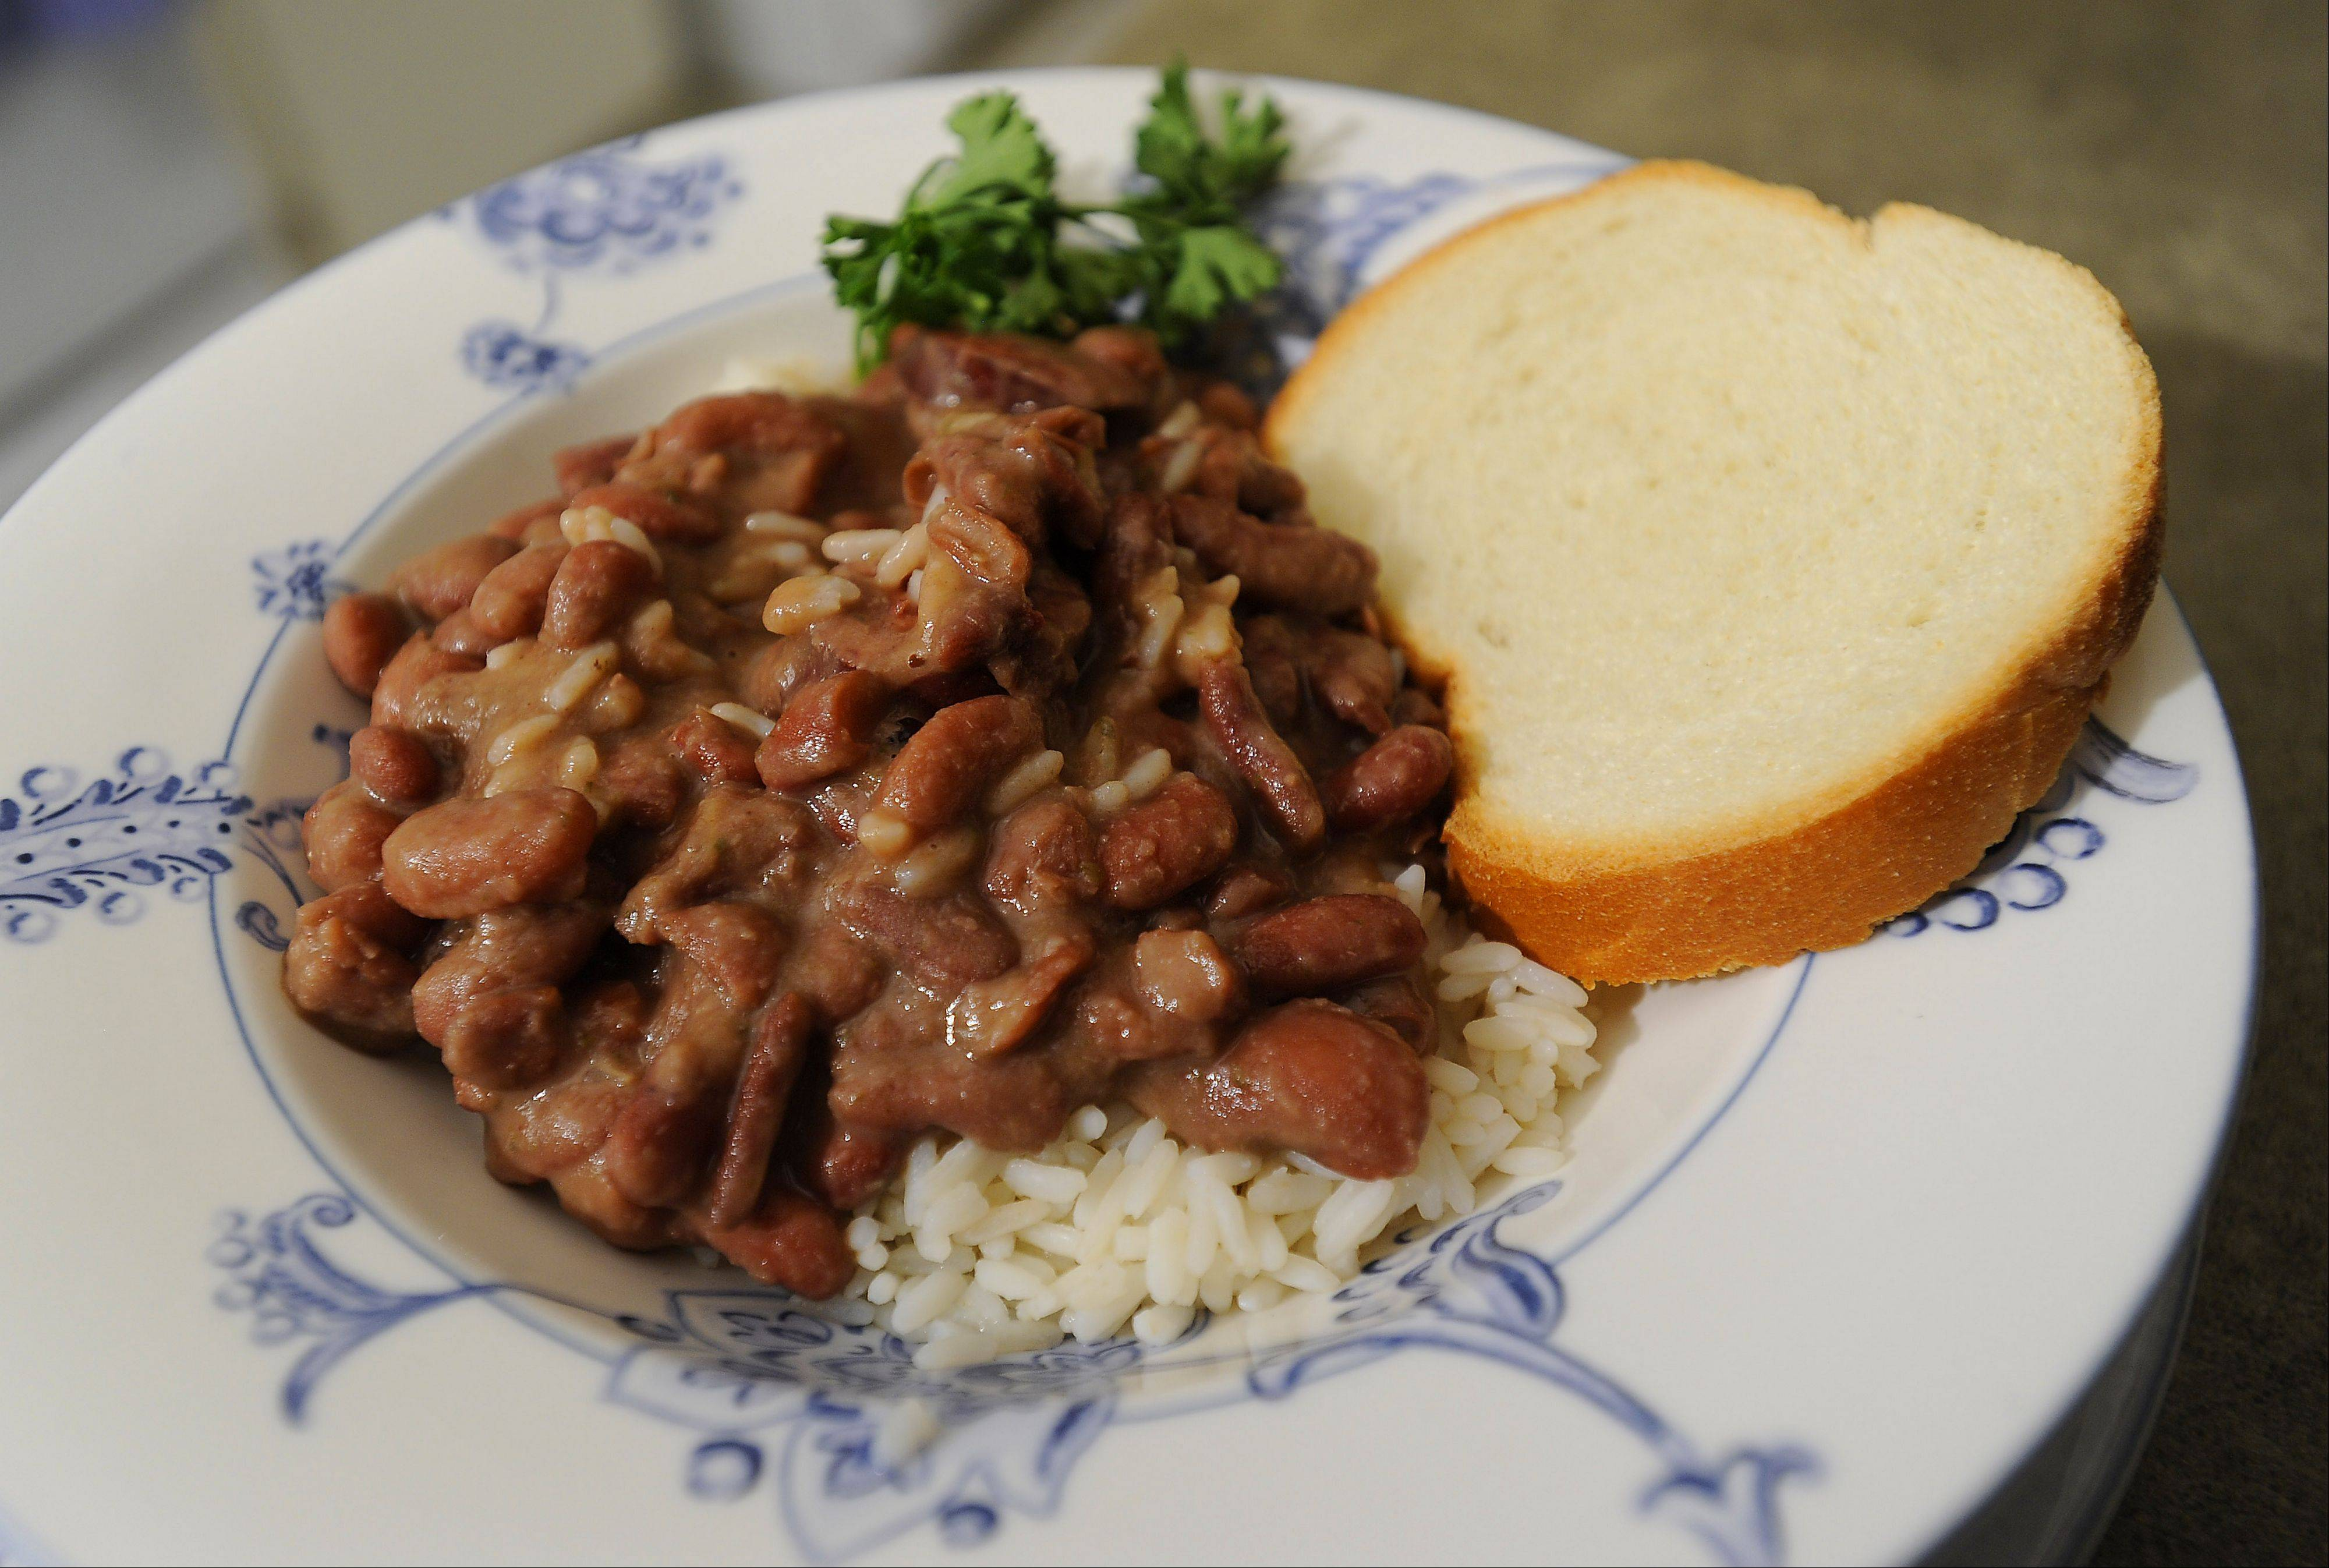 Andrew Ledet of Elk Grove Village's red beans and rice dish.